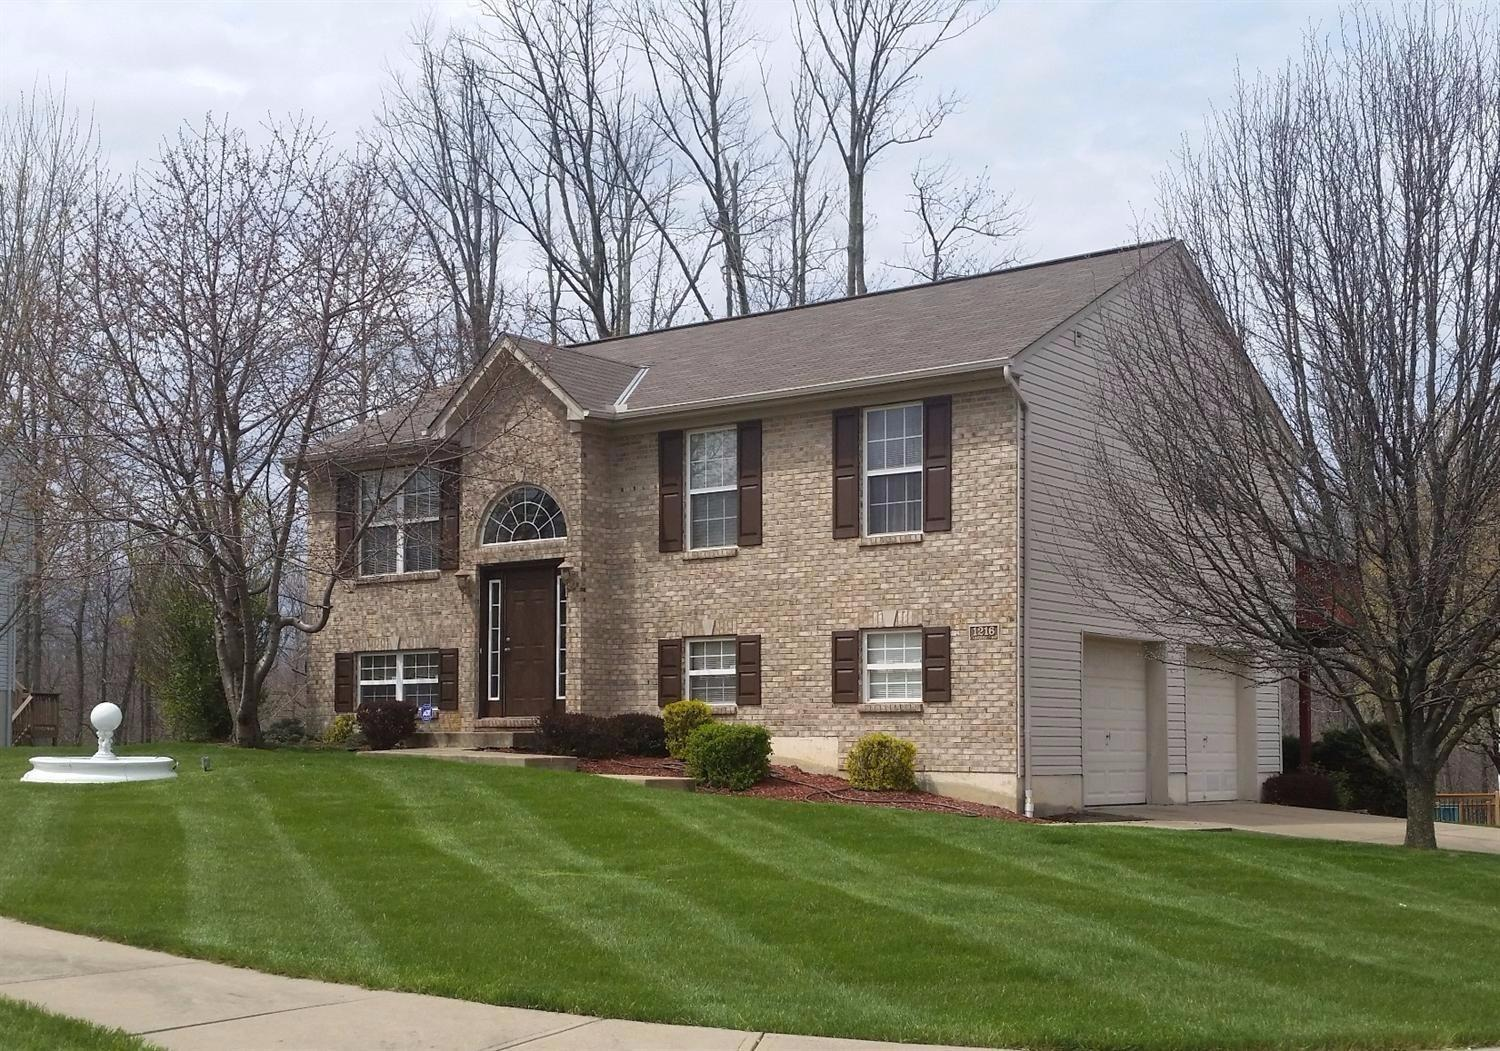 Photo 1 for 1216 Cannonball Way Independence, KY 41051